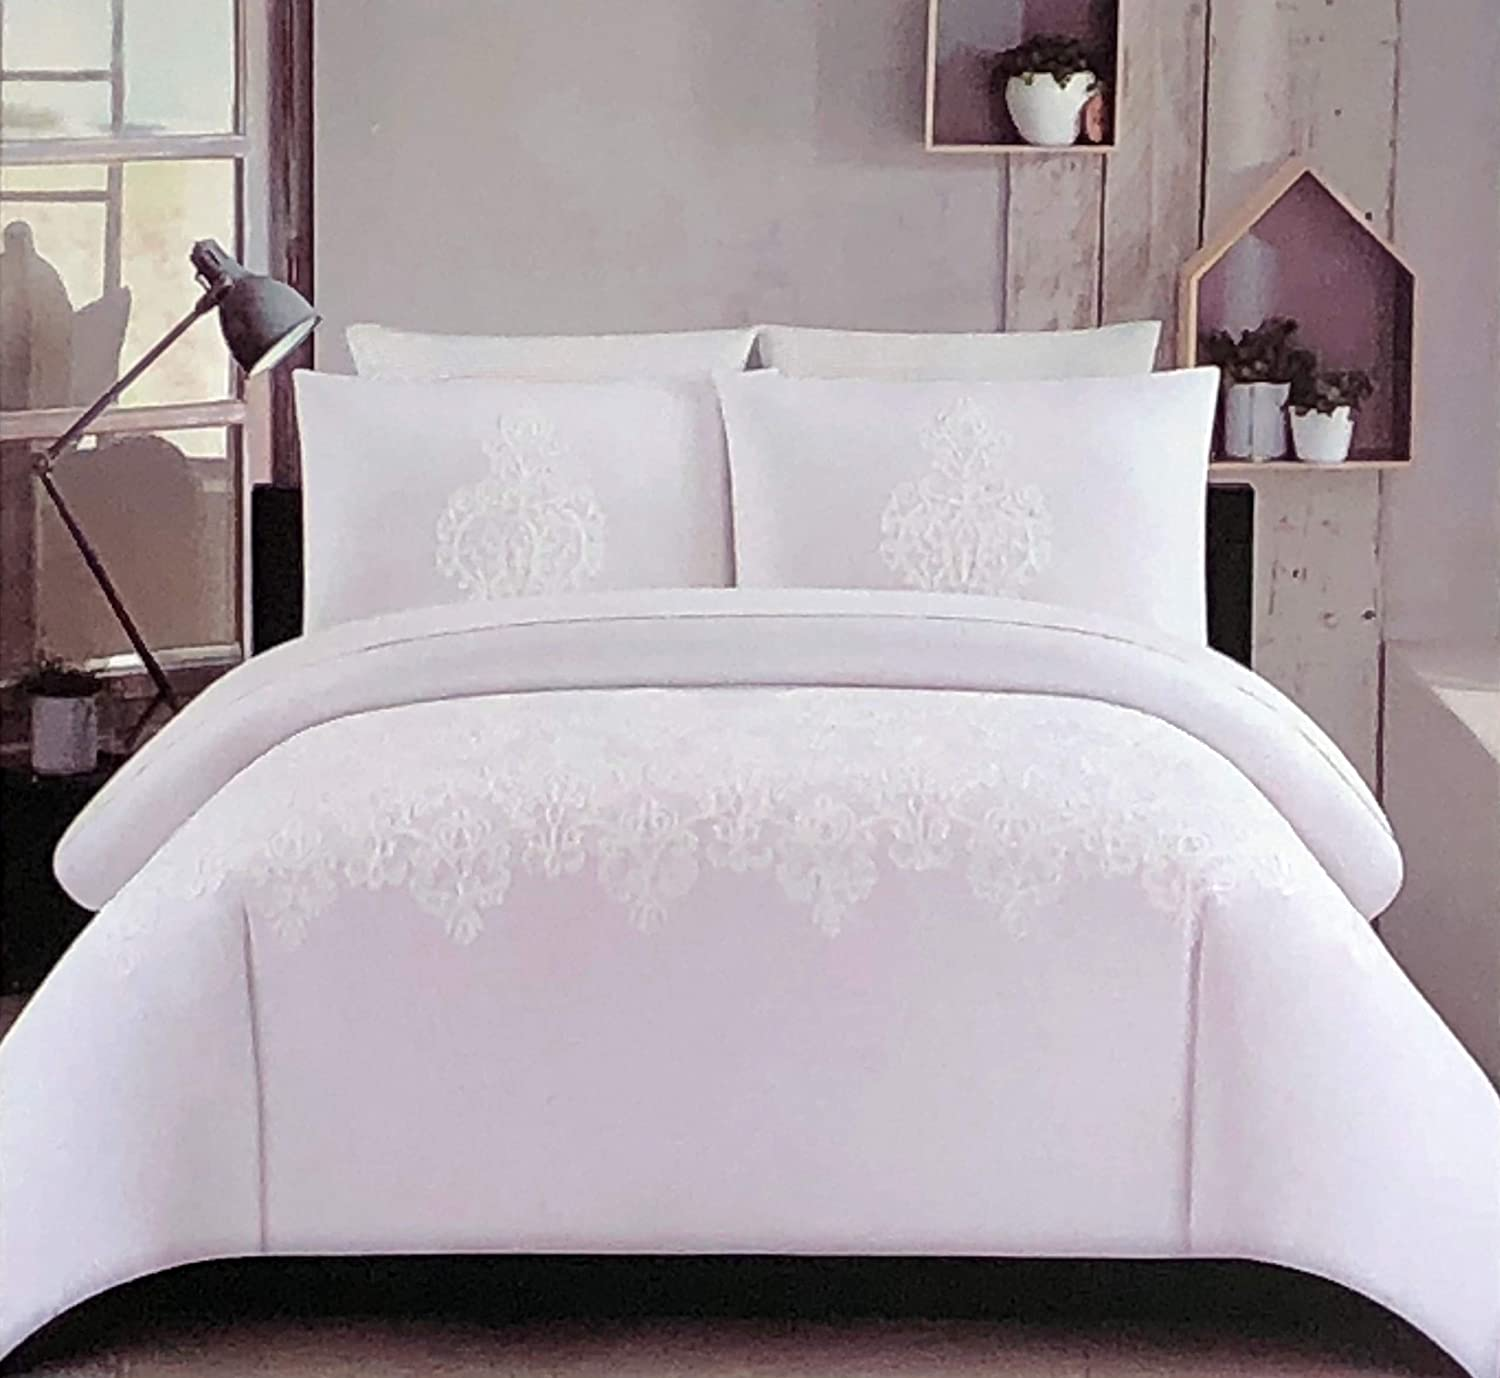 Tahari Home 3pc Duvet Cover Set Raised Embroidered Damask Medallion Pattern in White Thread on a Snow White Background (Full/Queen)